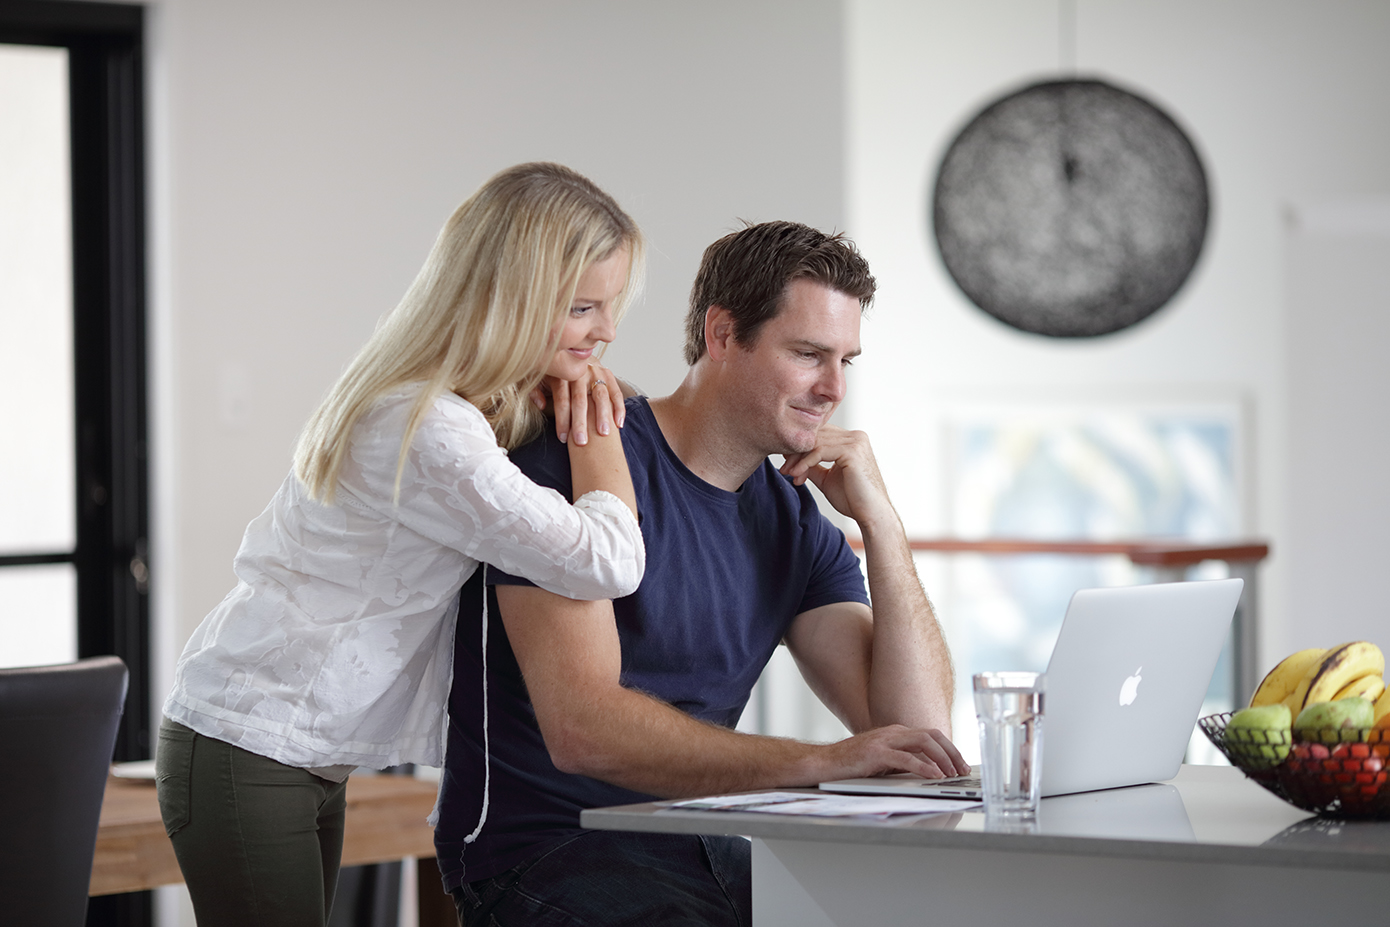 Couple looking at laptop computer on residential kitchen bench